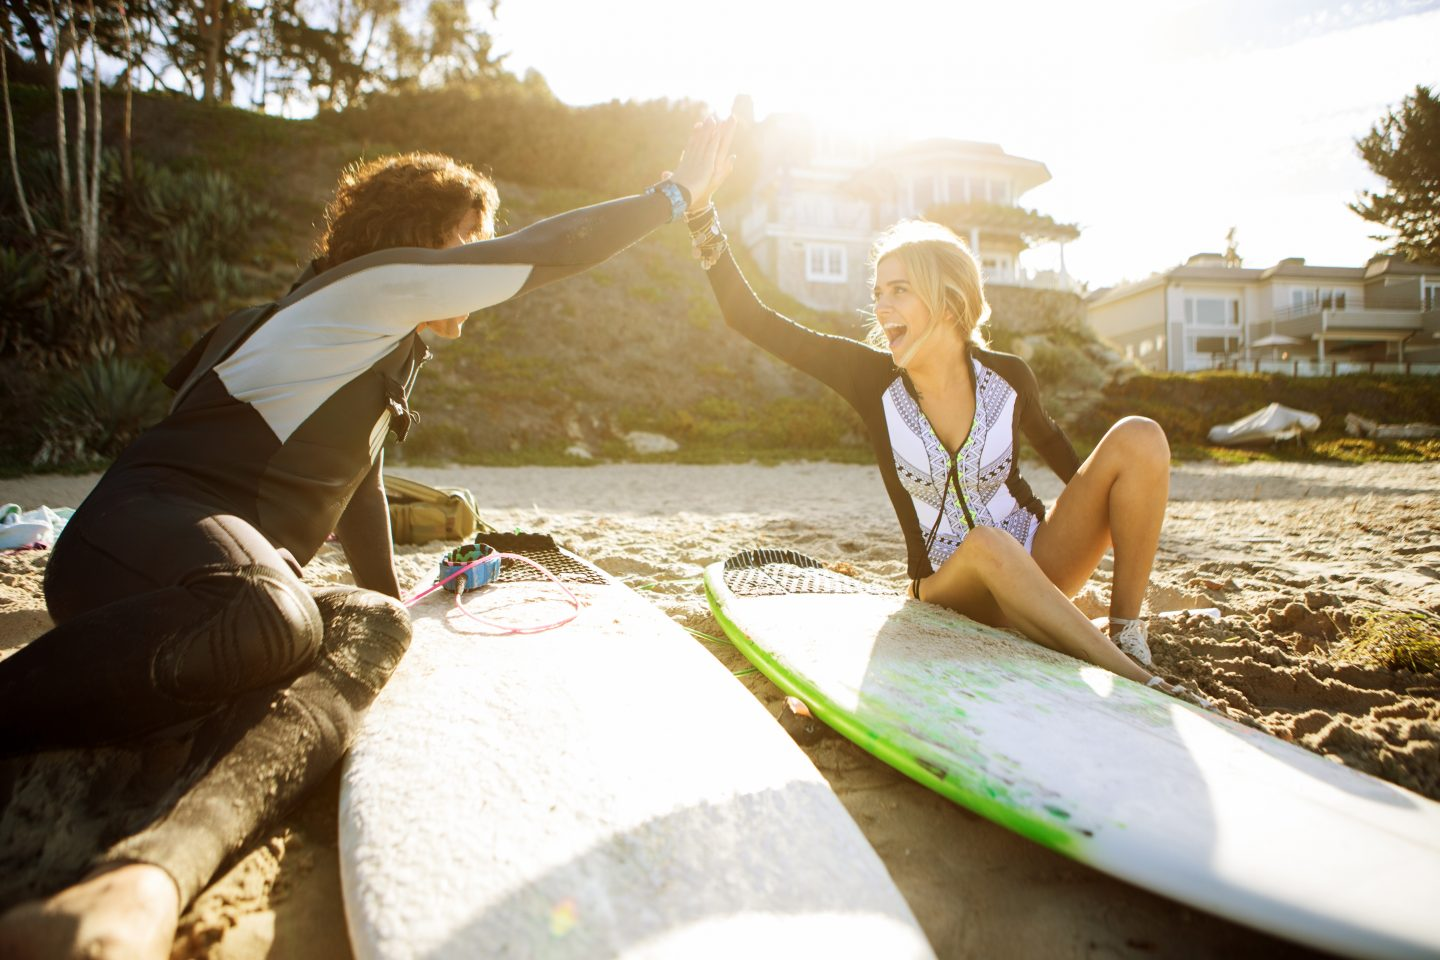 Friends cheering each other at the beach sitting beside their surf boards_ Surfing_Friends_Sunset